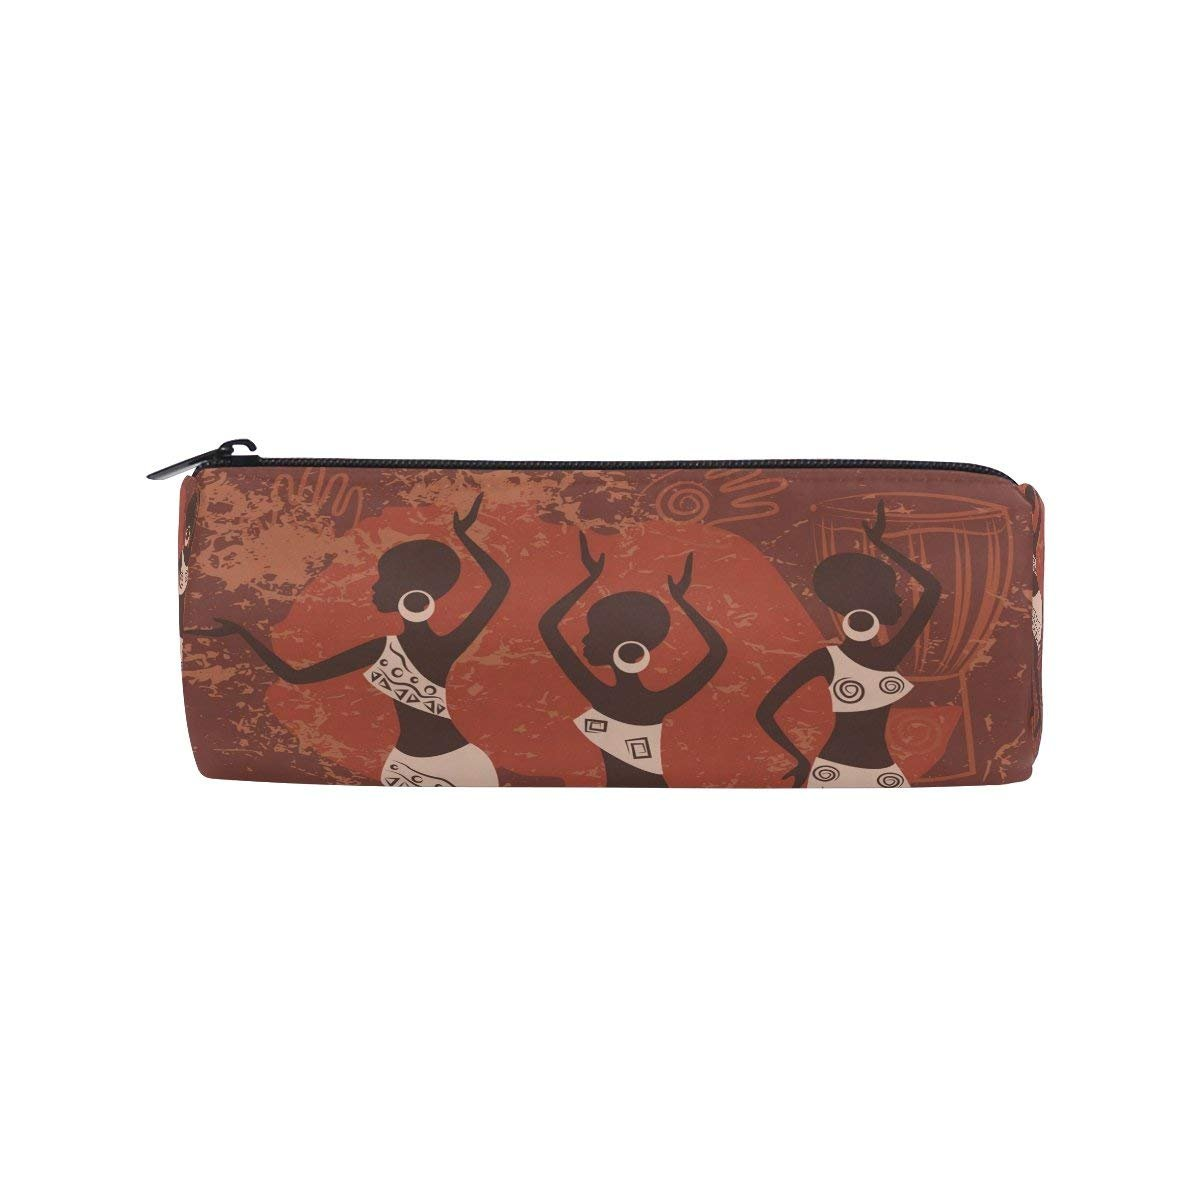 Africa Woman Art Dancing Round Pencil Case Stationery Bag Zipper Pouch Pencil Holder